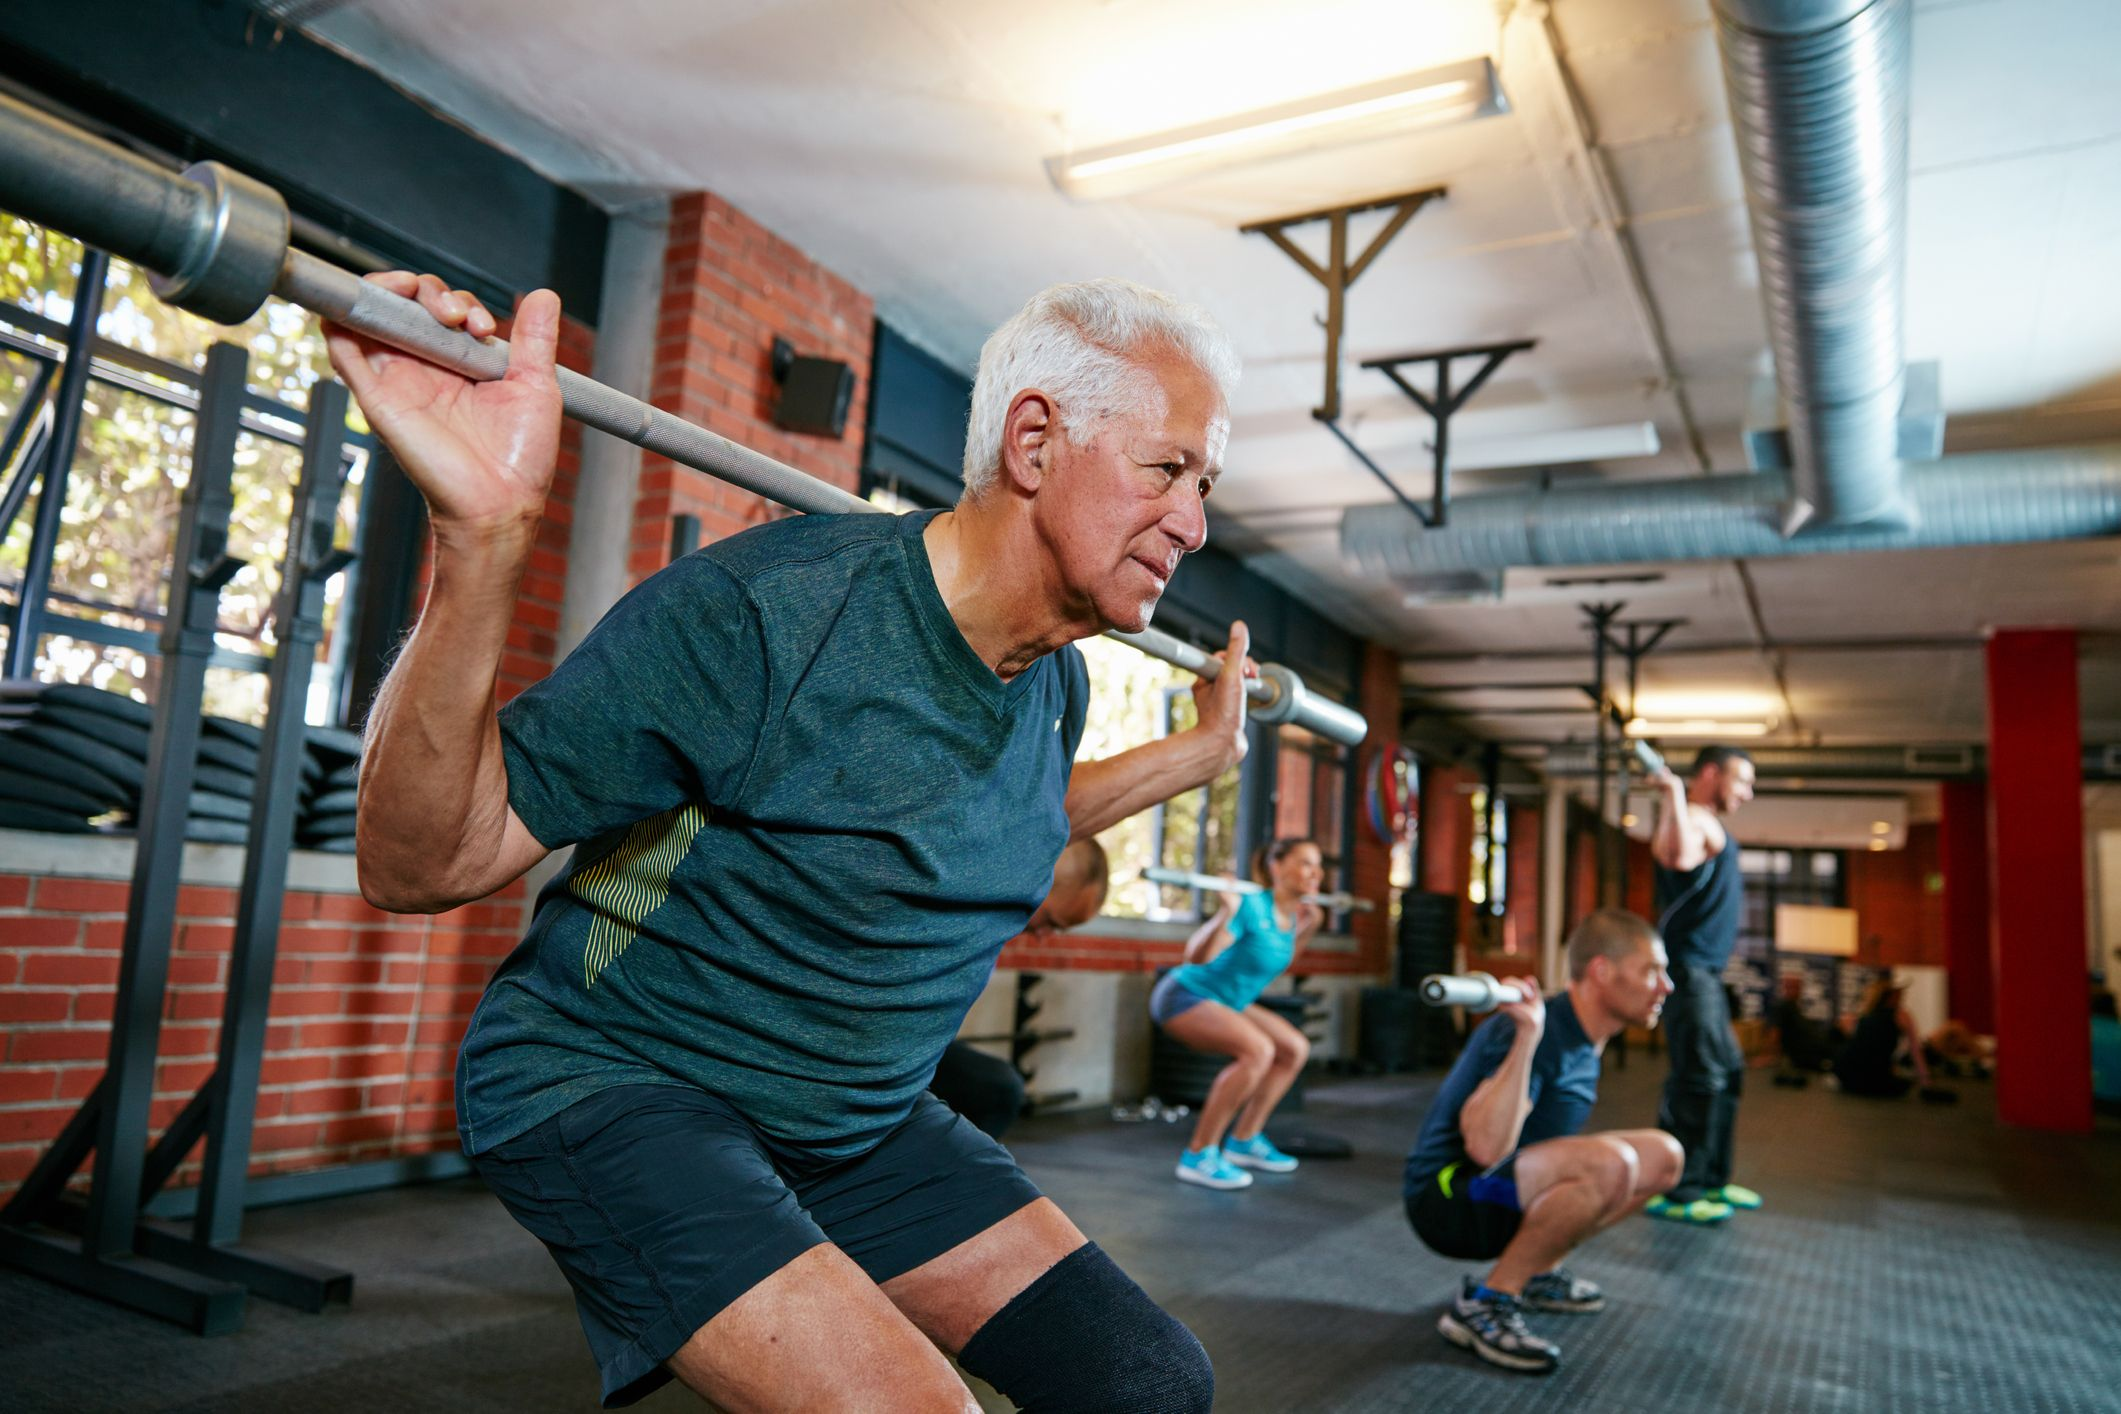 13 Ways to Age-Proof Your Body in the Gym